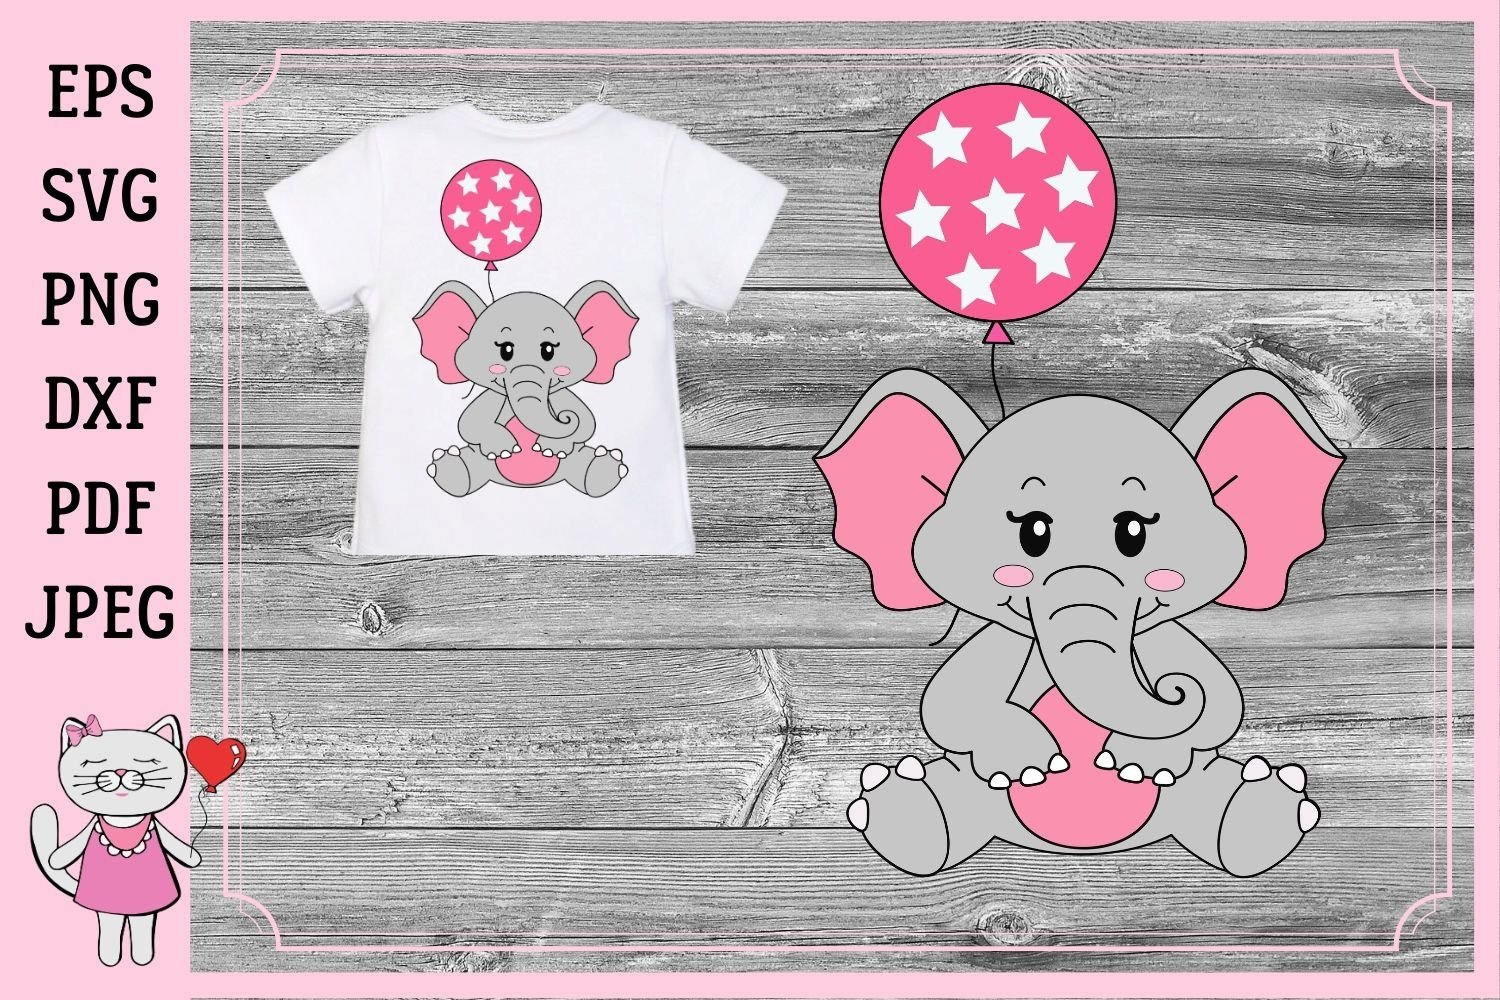 223+ Svg Baby Elephant Free – SVG,PNG,DXF,EPS include